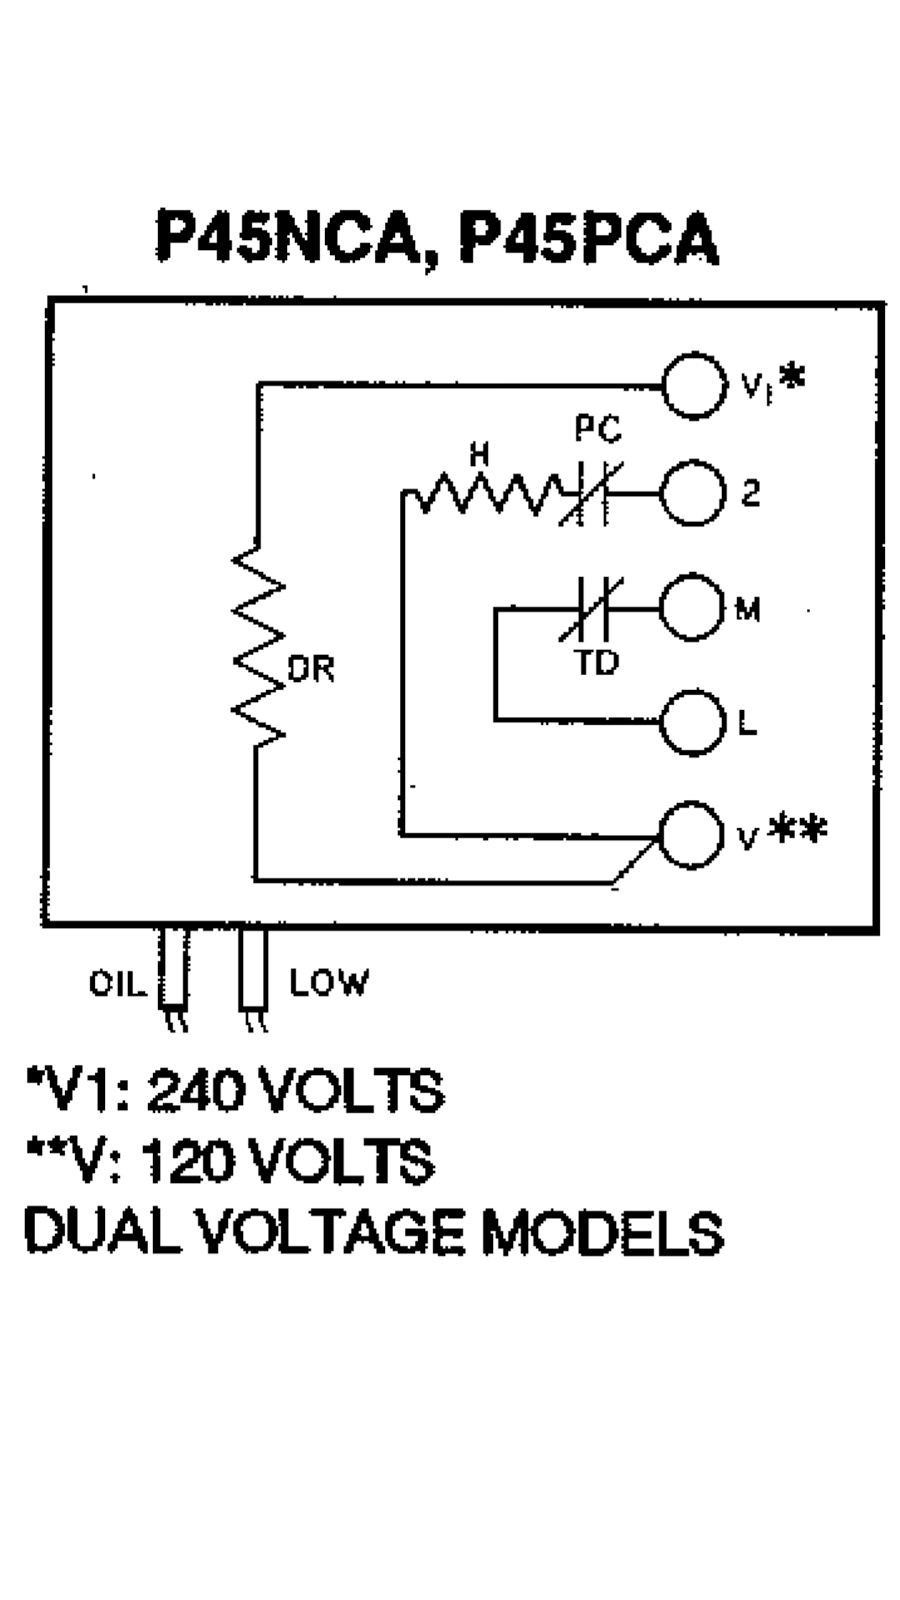 Mitsubishi Oil Gauge Wiring Diagram Diagrams Instruction Delica 96 The Same Switch In A Warm Ambient Is Going To Time Out Faster Than It Would Electrical